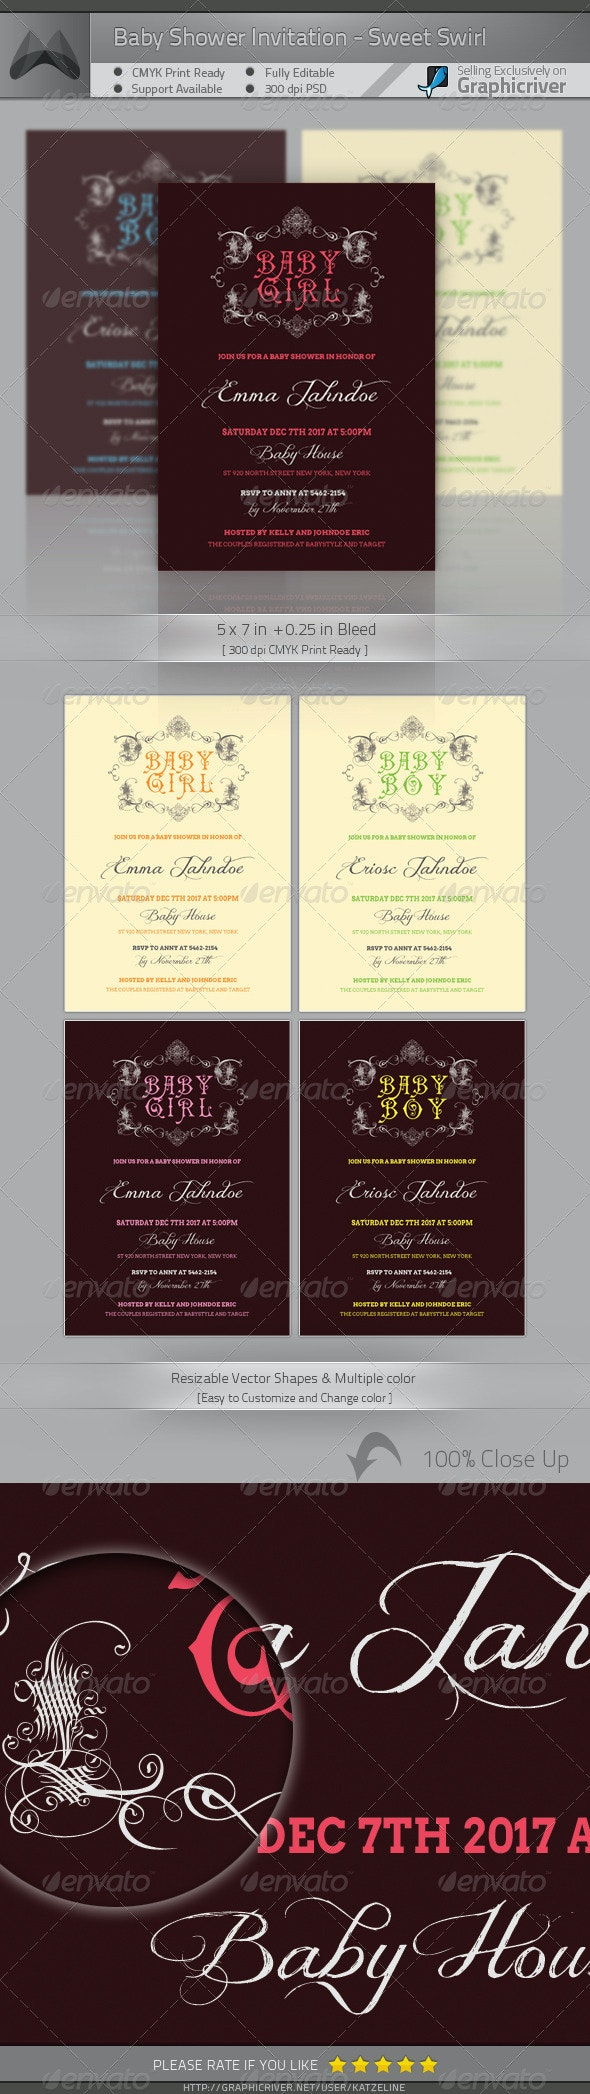 Baby Shower Invitation Card - Family Cards & Invites